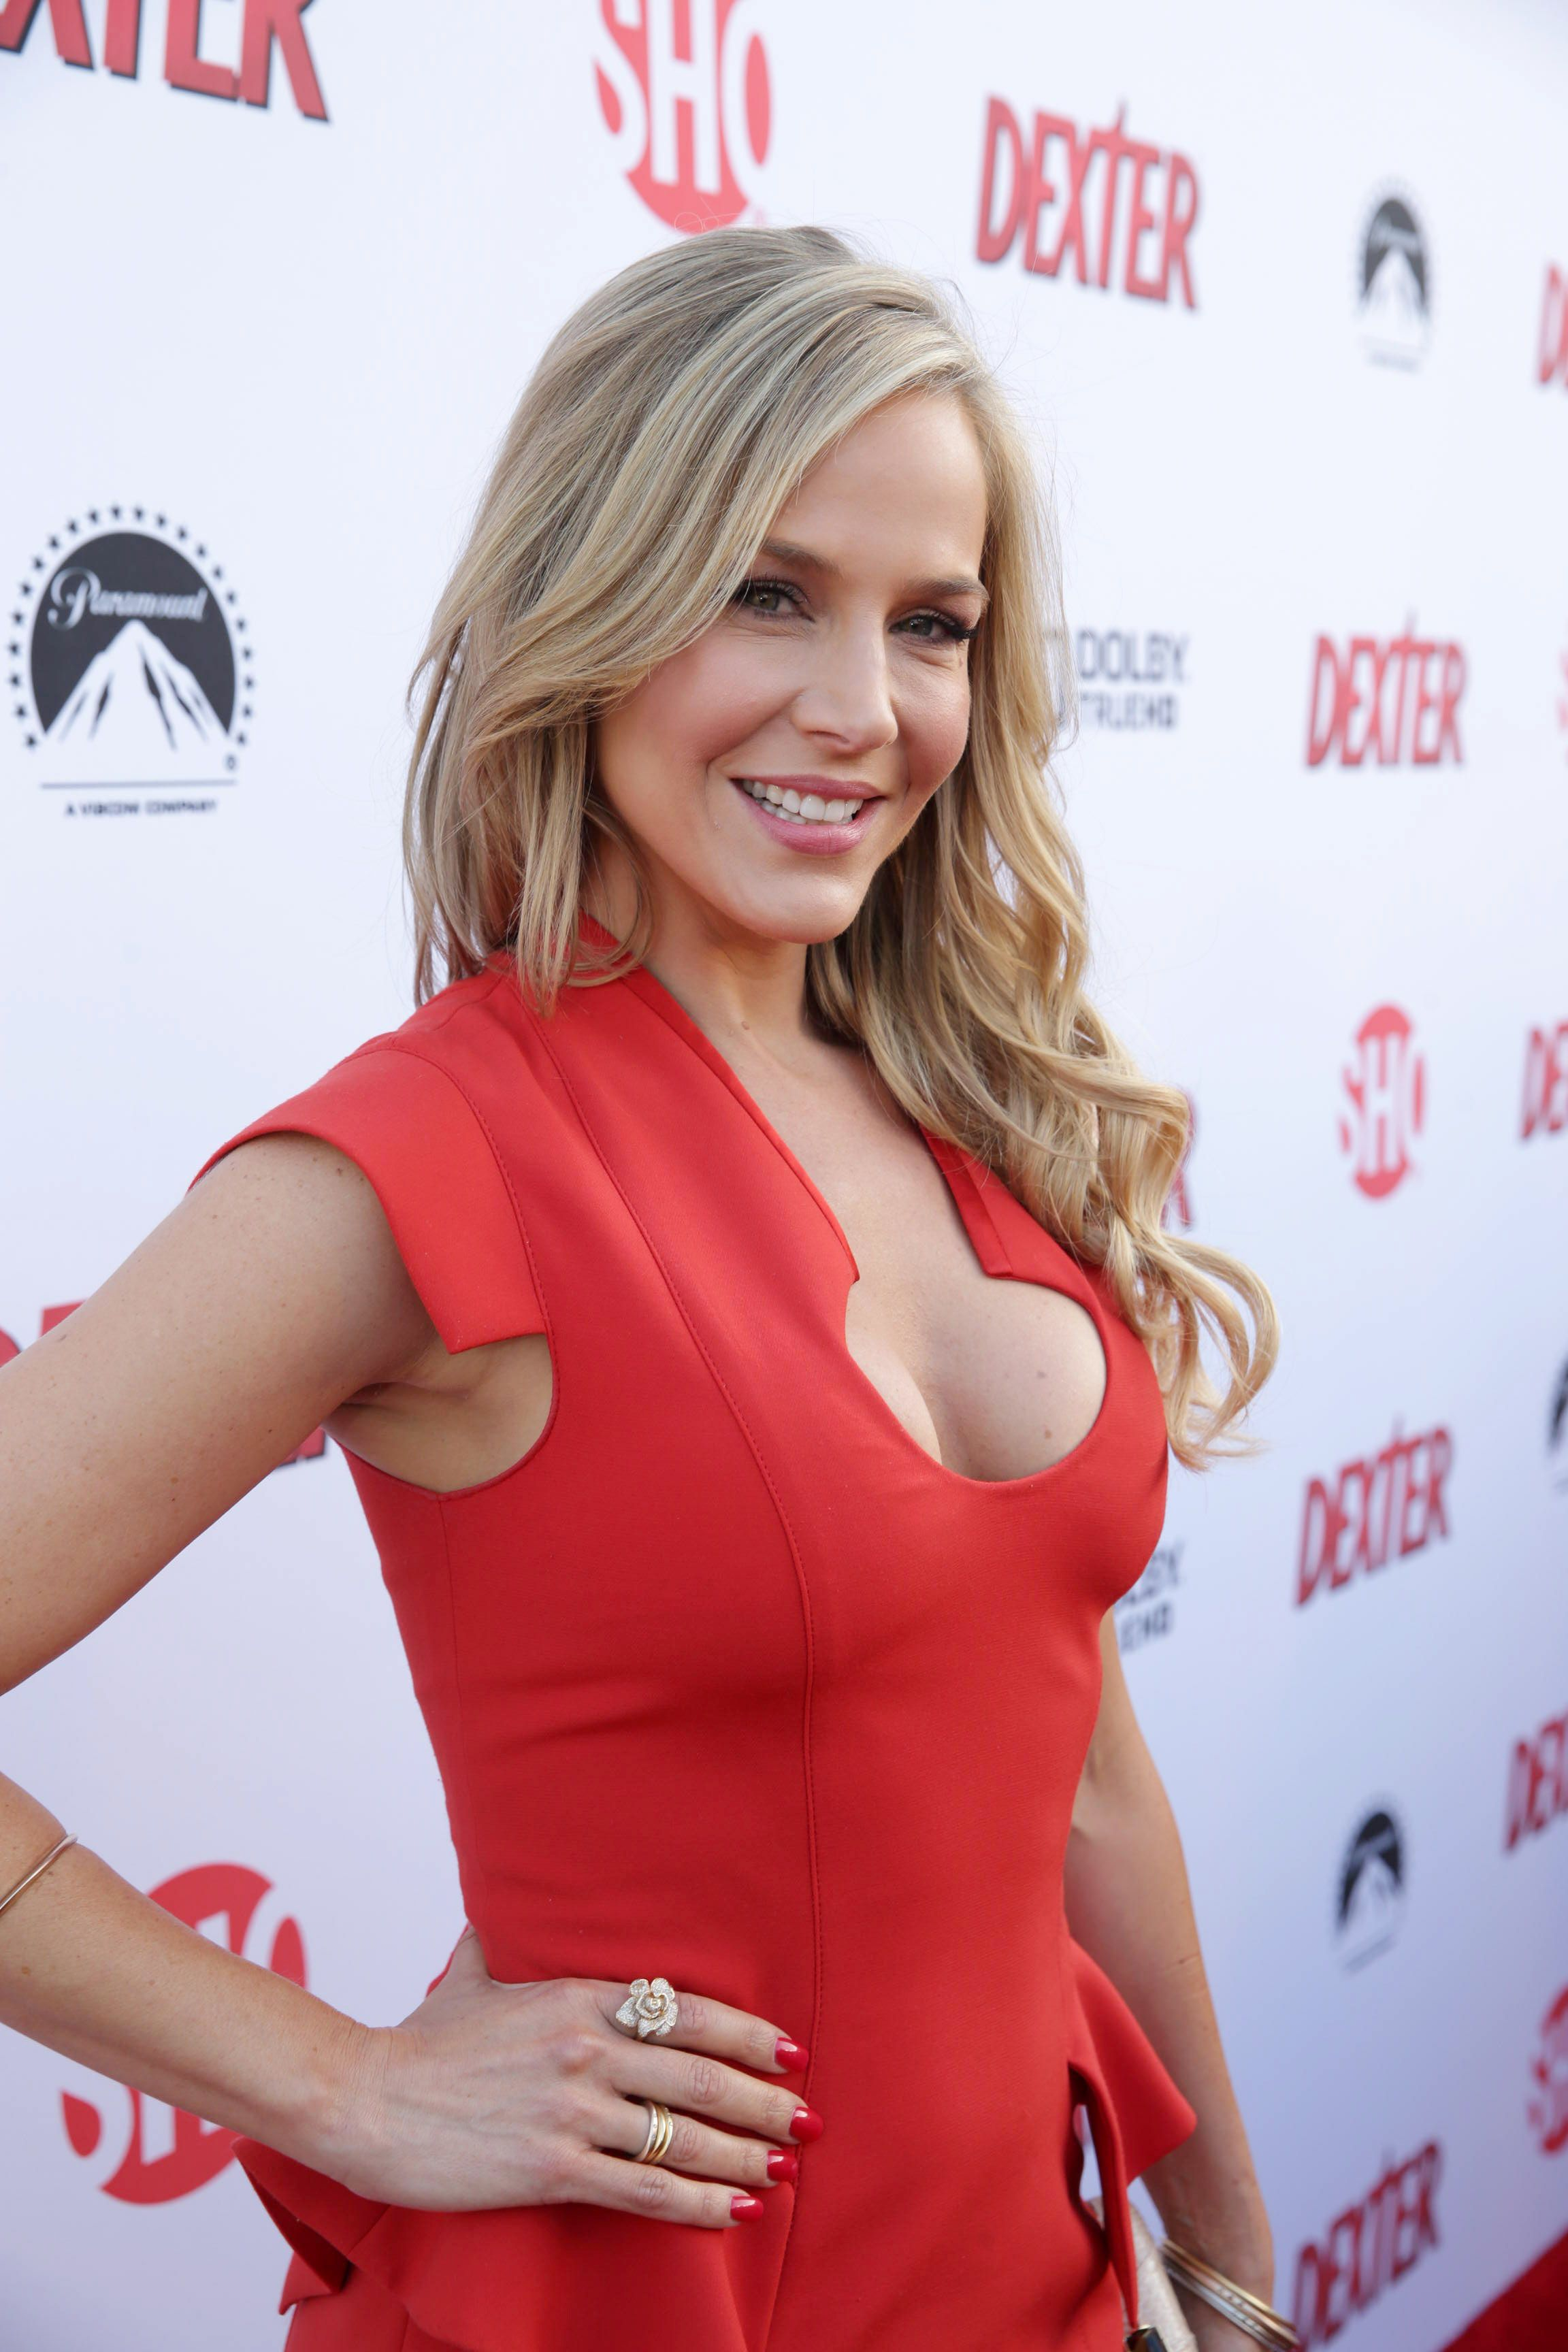 Julie Benz nudes (46 photos), photo Paparazzi, iCloud, cleavage 2020